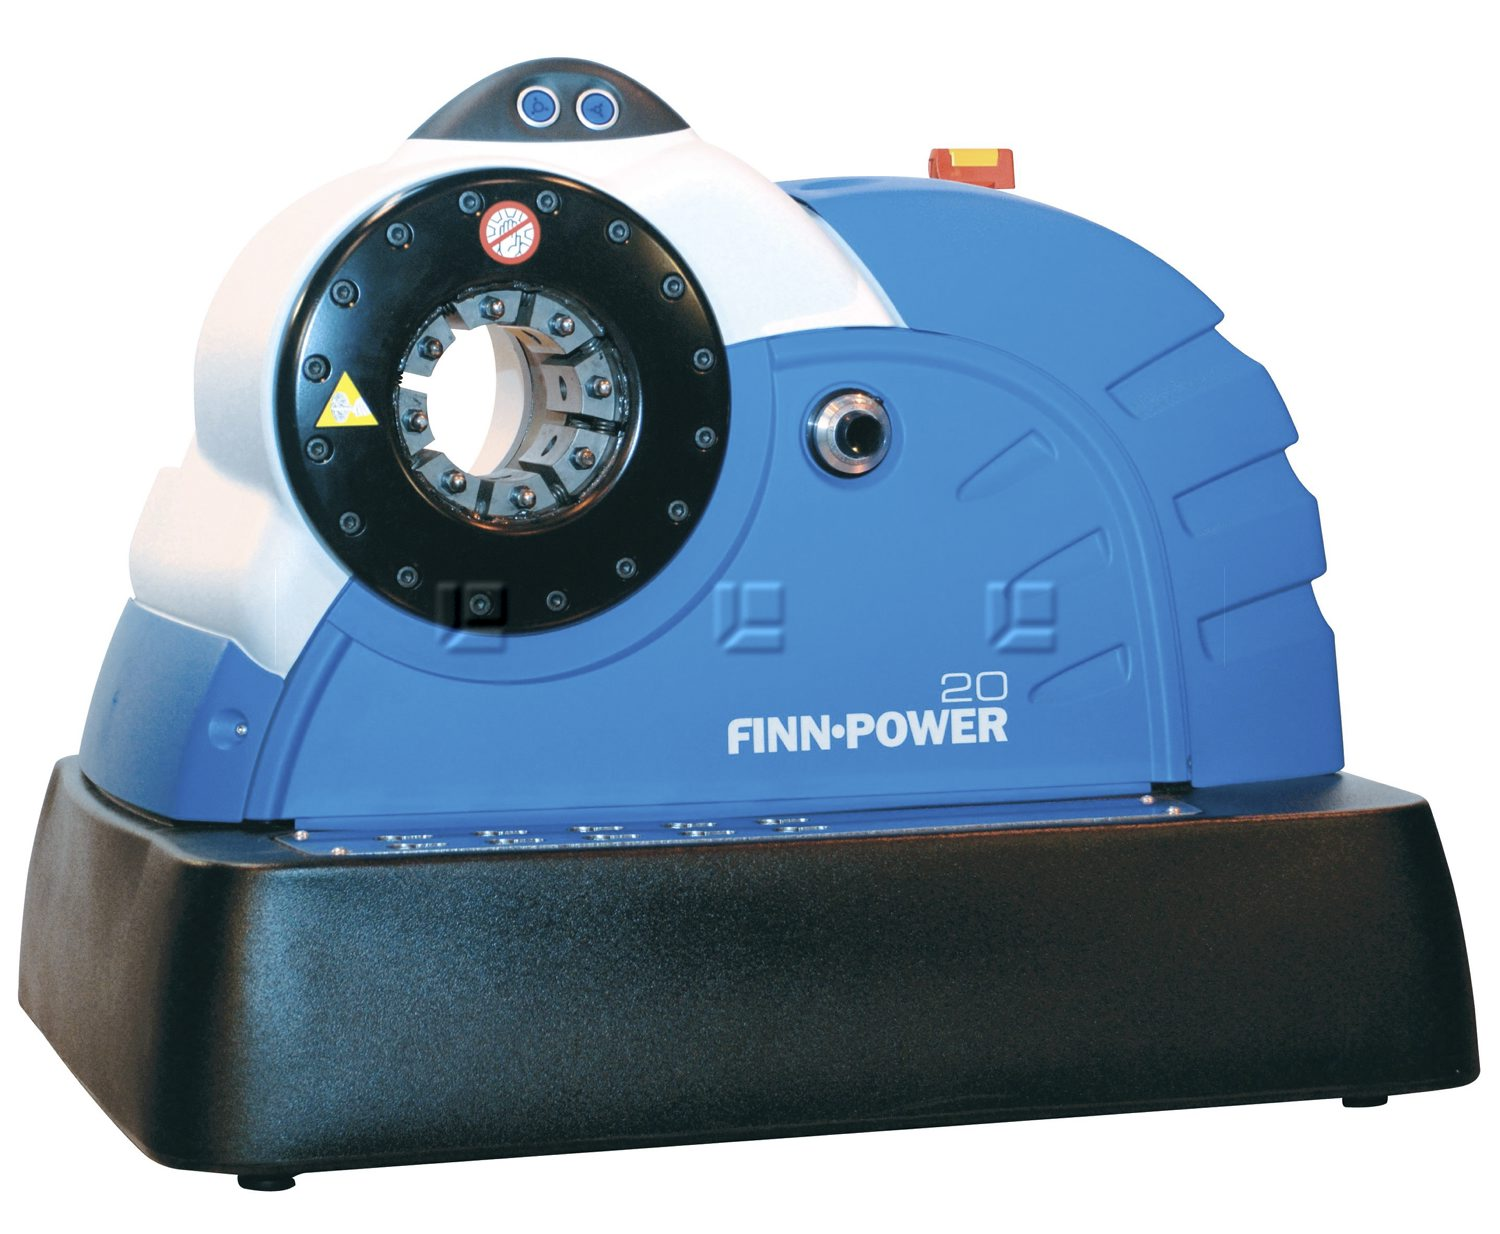 Finn Power Hydraulic Hose Crimping Machine - Buy Finn Power Hydraulic Hose  Crimping Machine Product on Alibaba com